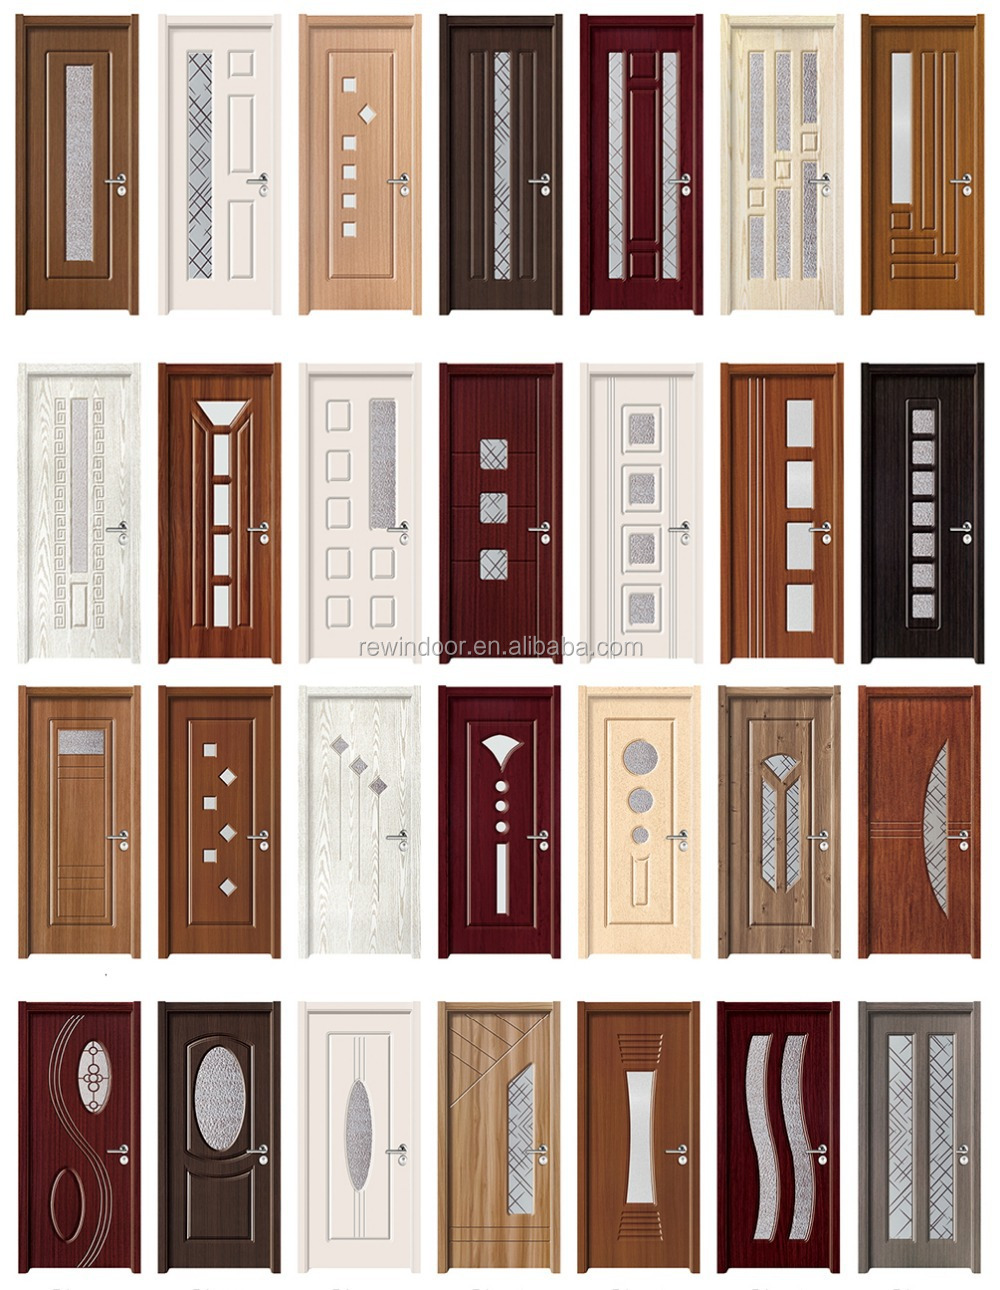 Bathroom Doors Plastic 2017 hot sale pvc bathroom plastic door prices - buy pvc bathroom